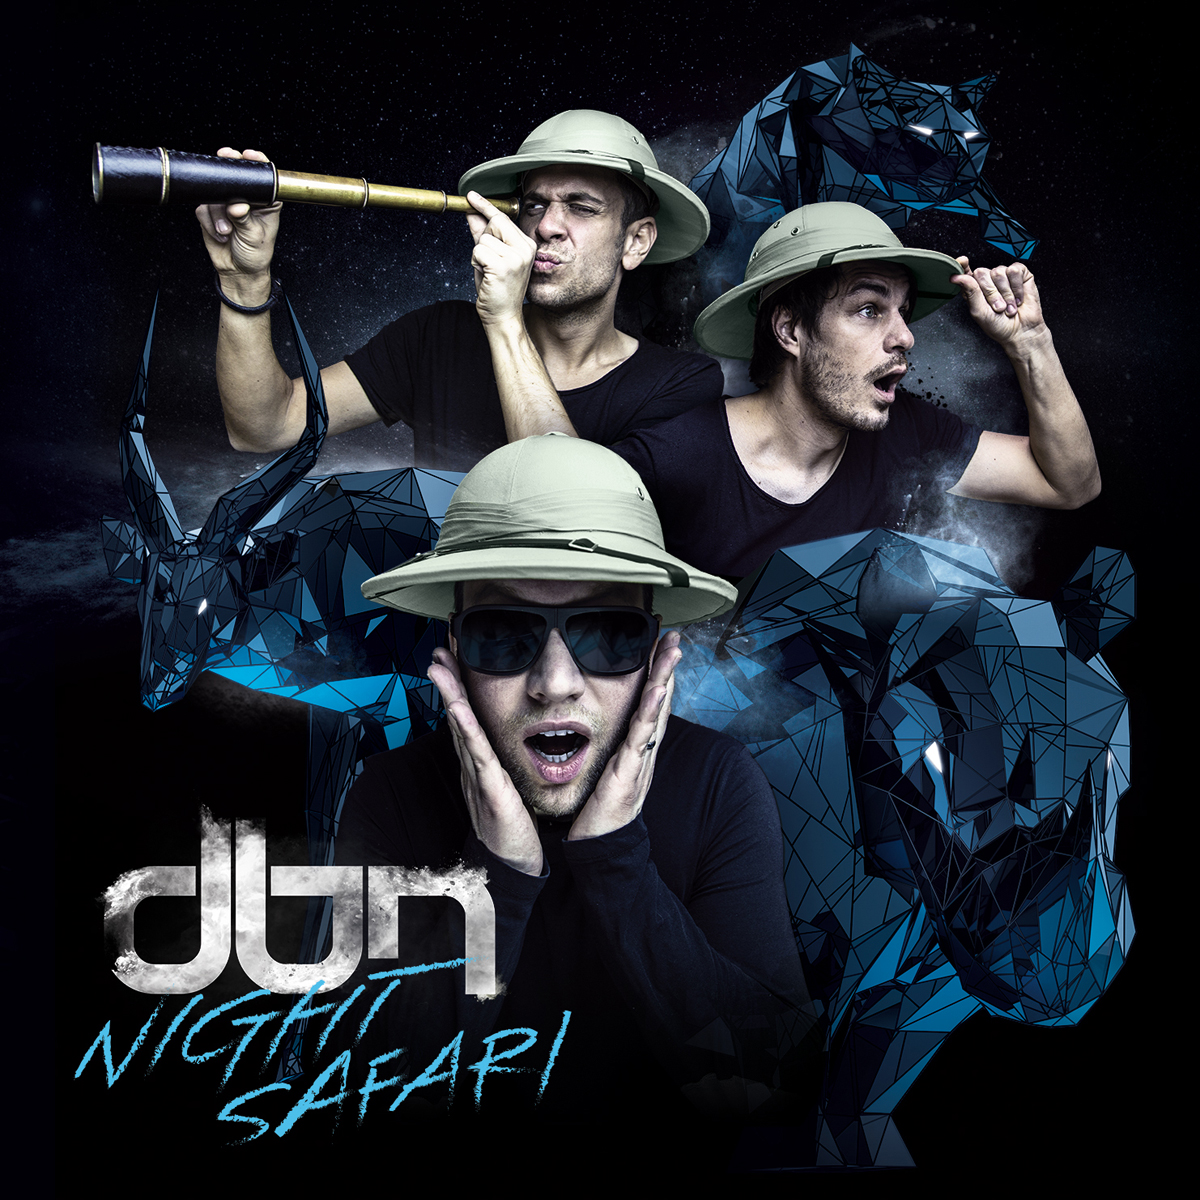 DBN - Night Safari